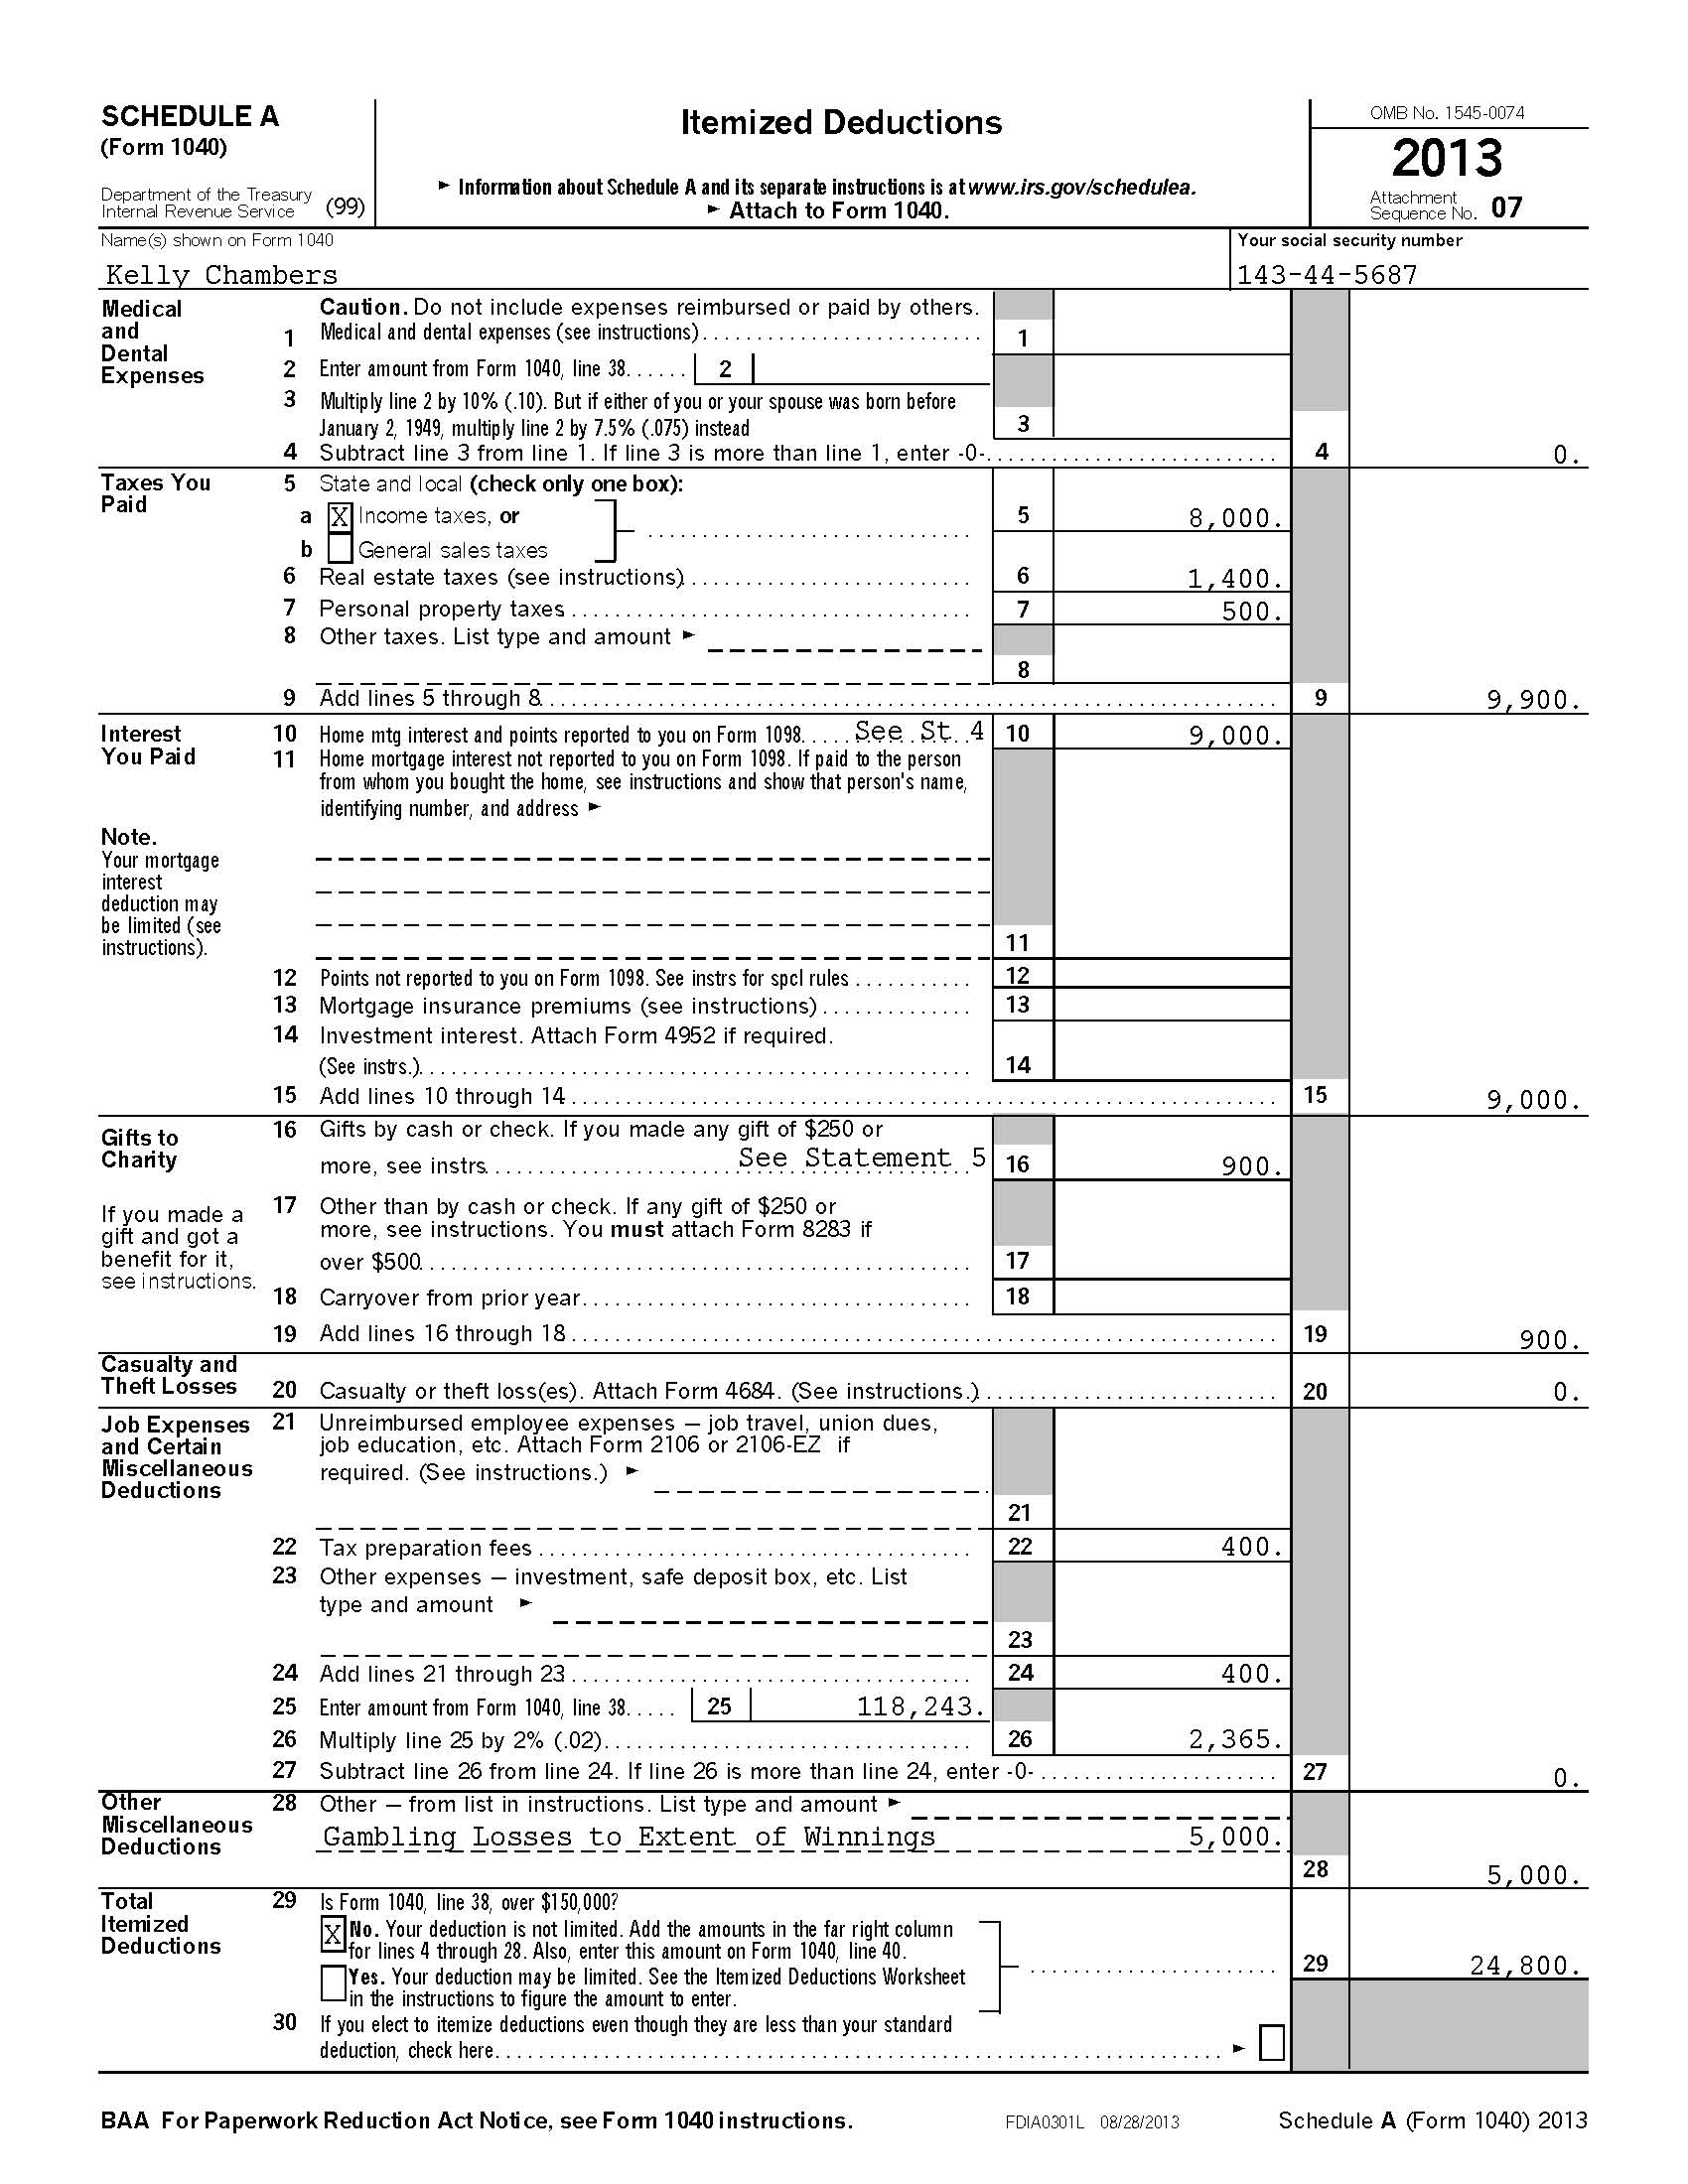 Irs Form 4952 Honghankk